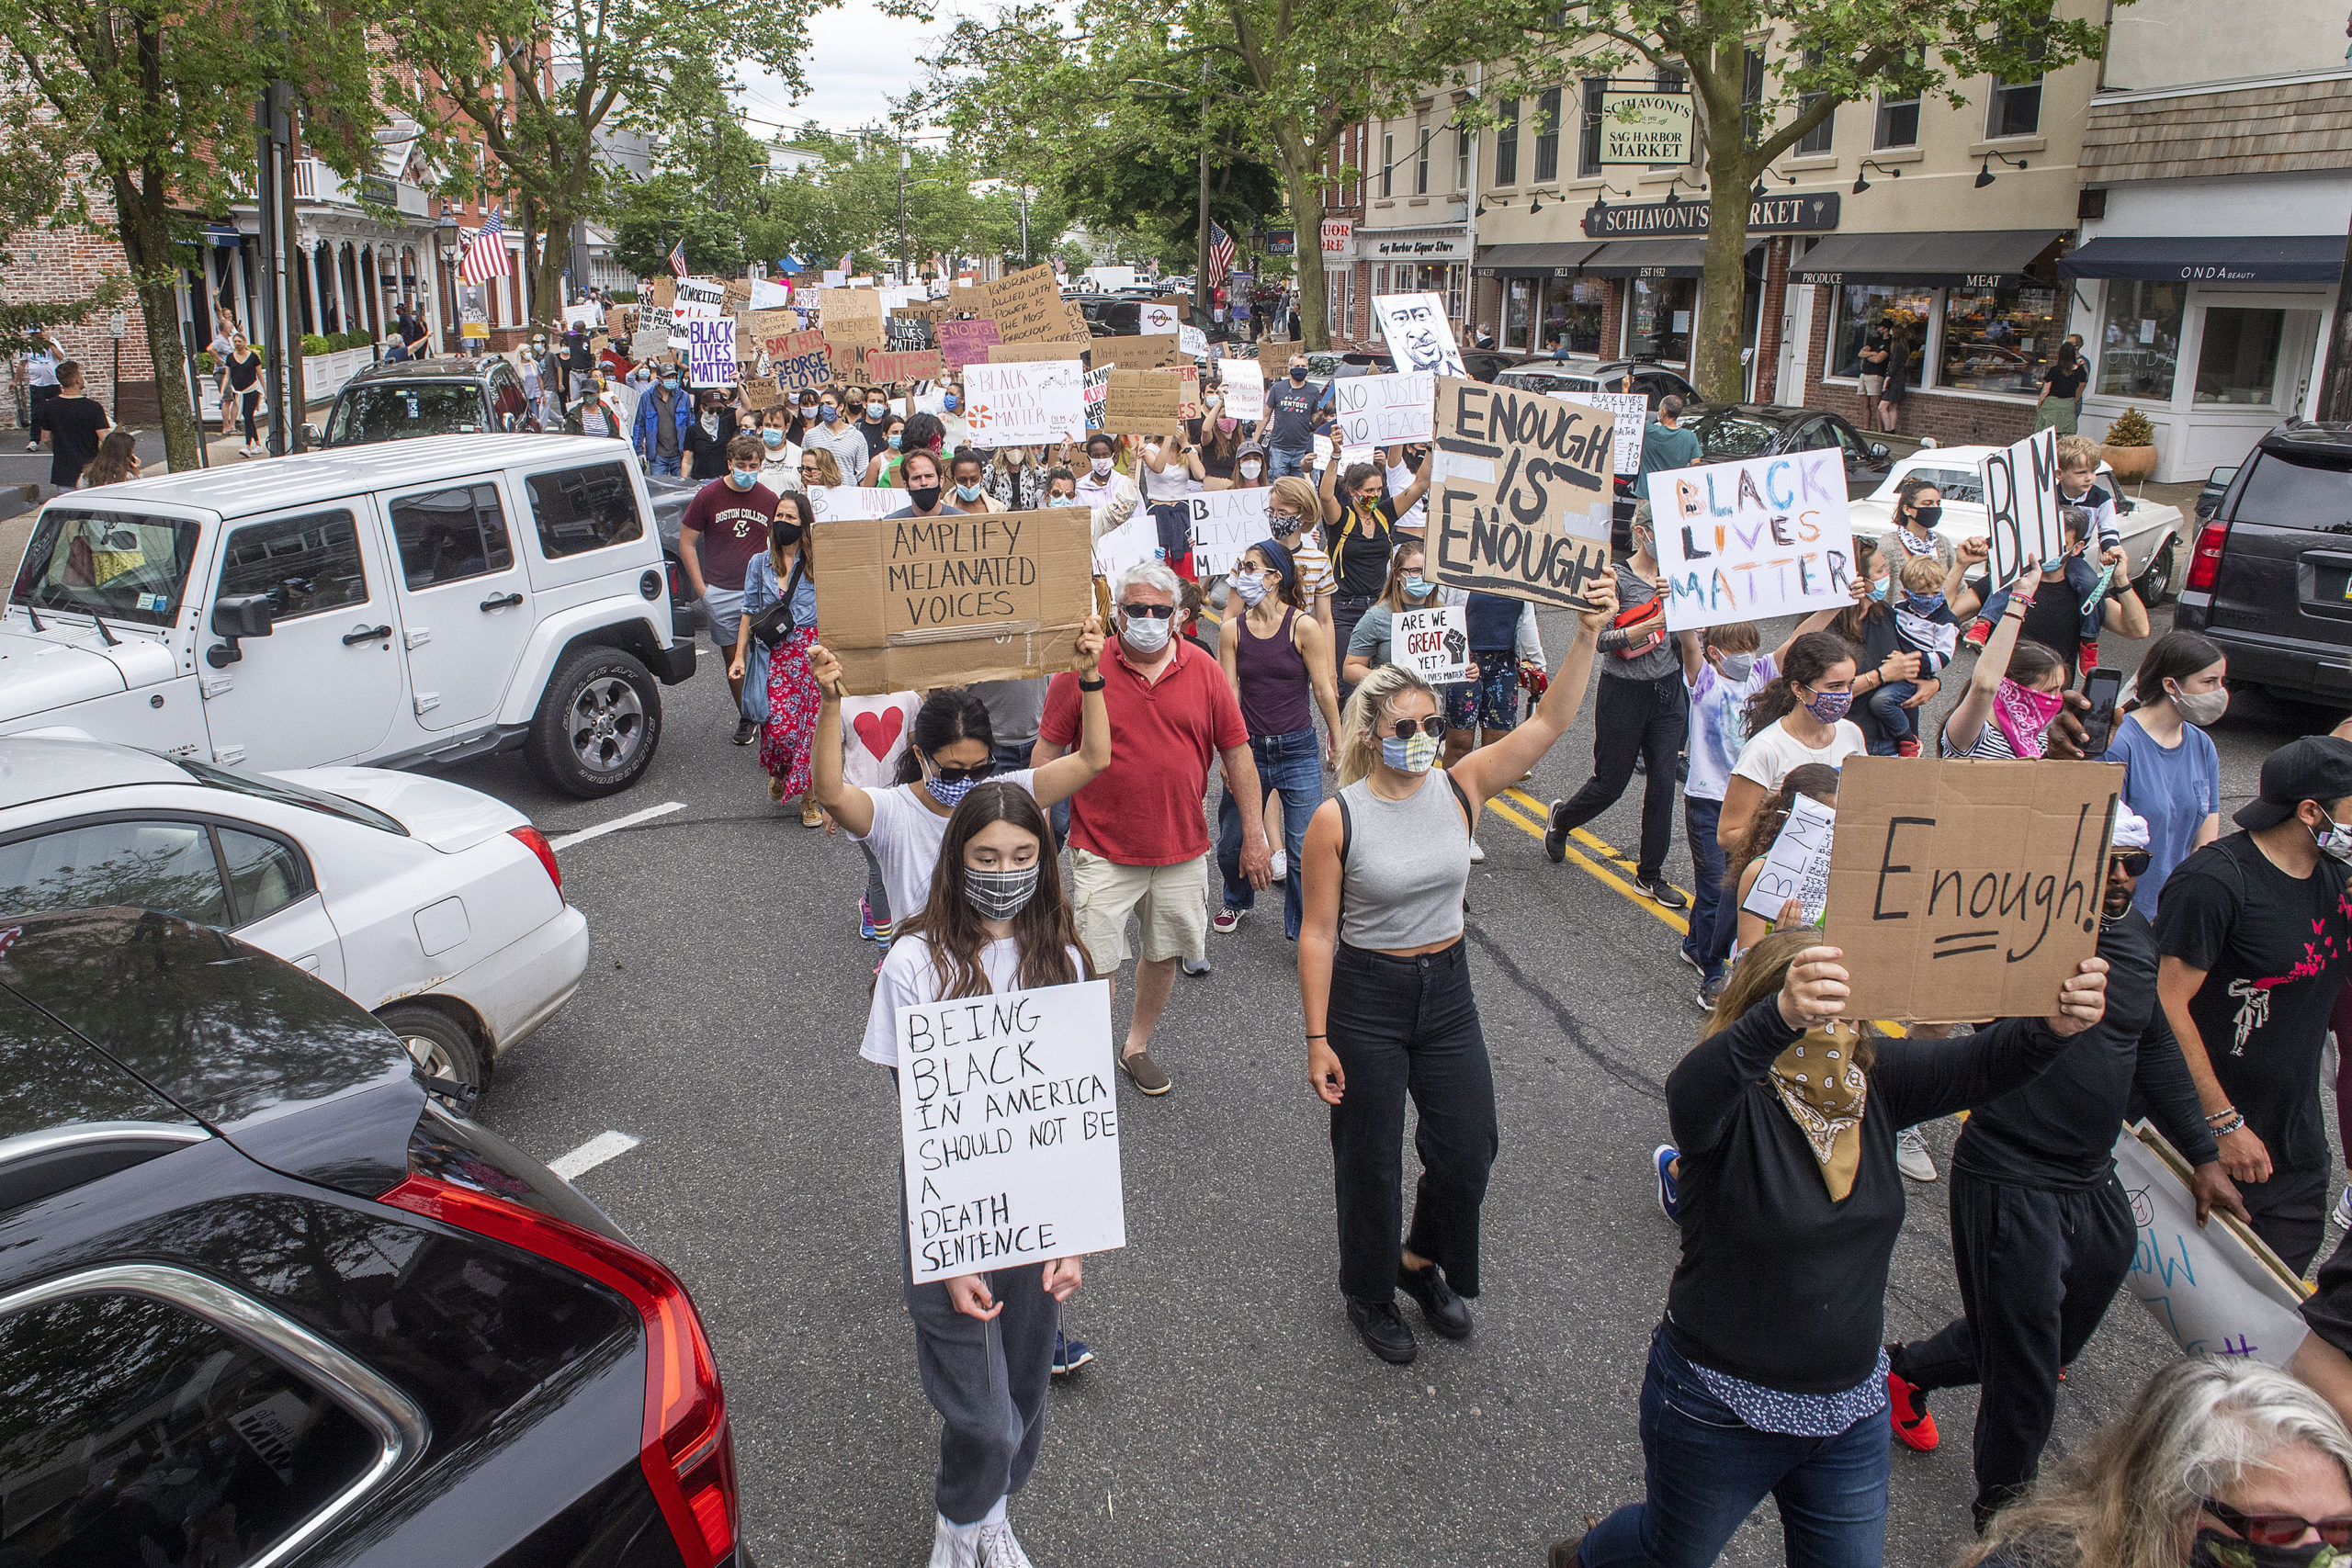 Hundreds of people participated in a protest on Friday in Sag Harbor against police brutality and racism. MICHAEL HELLER